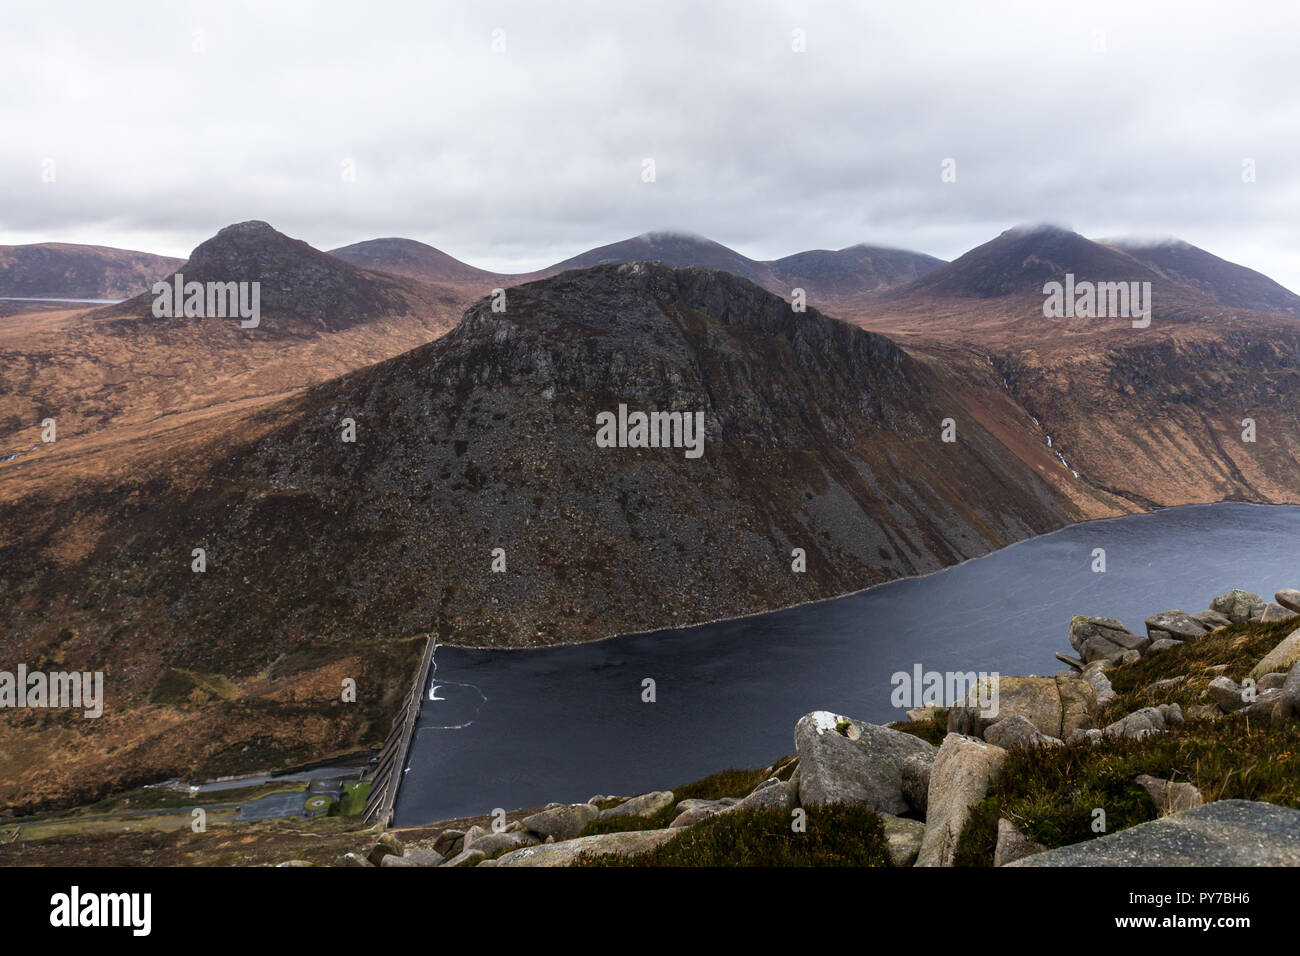 View of Ben Crom mountain and reservoir from lower slopes of Slieve Binnian. Doan mountain on left. Mourne Mountains, N.Ireland. - Stock Image